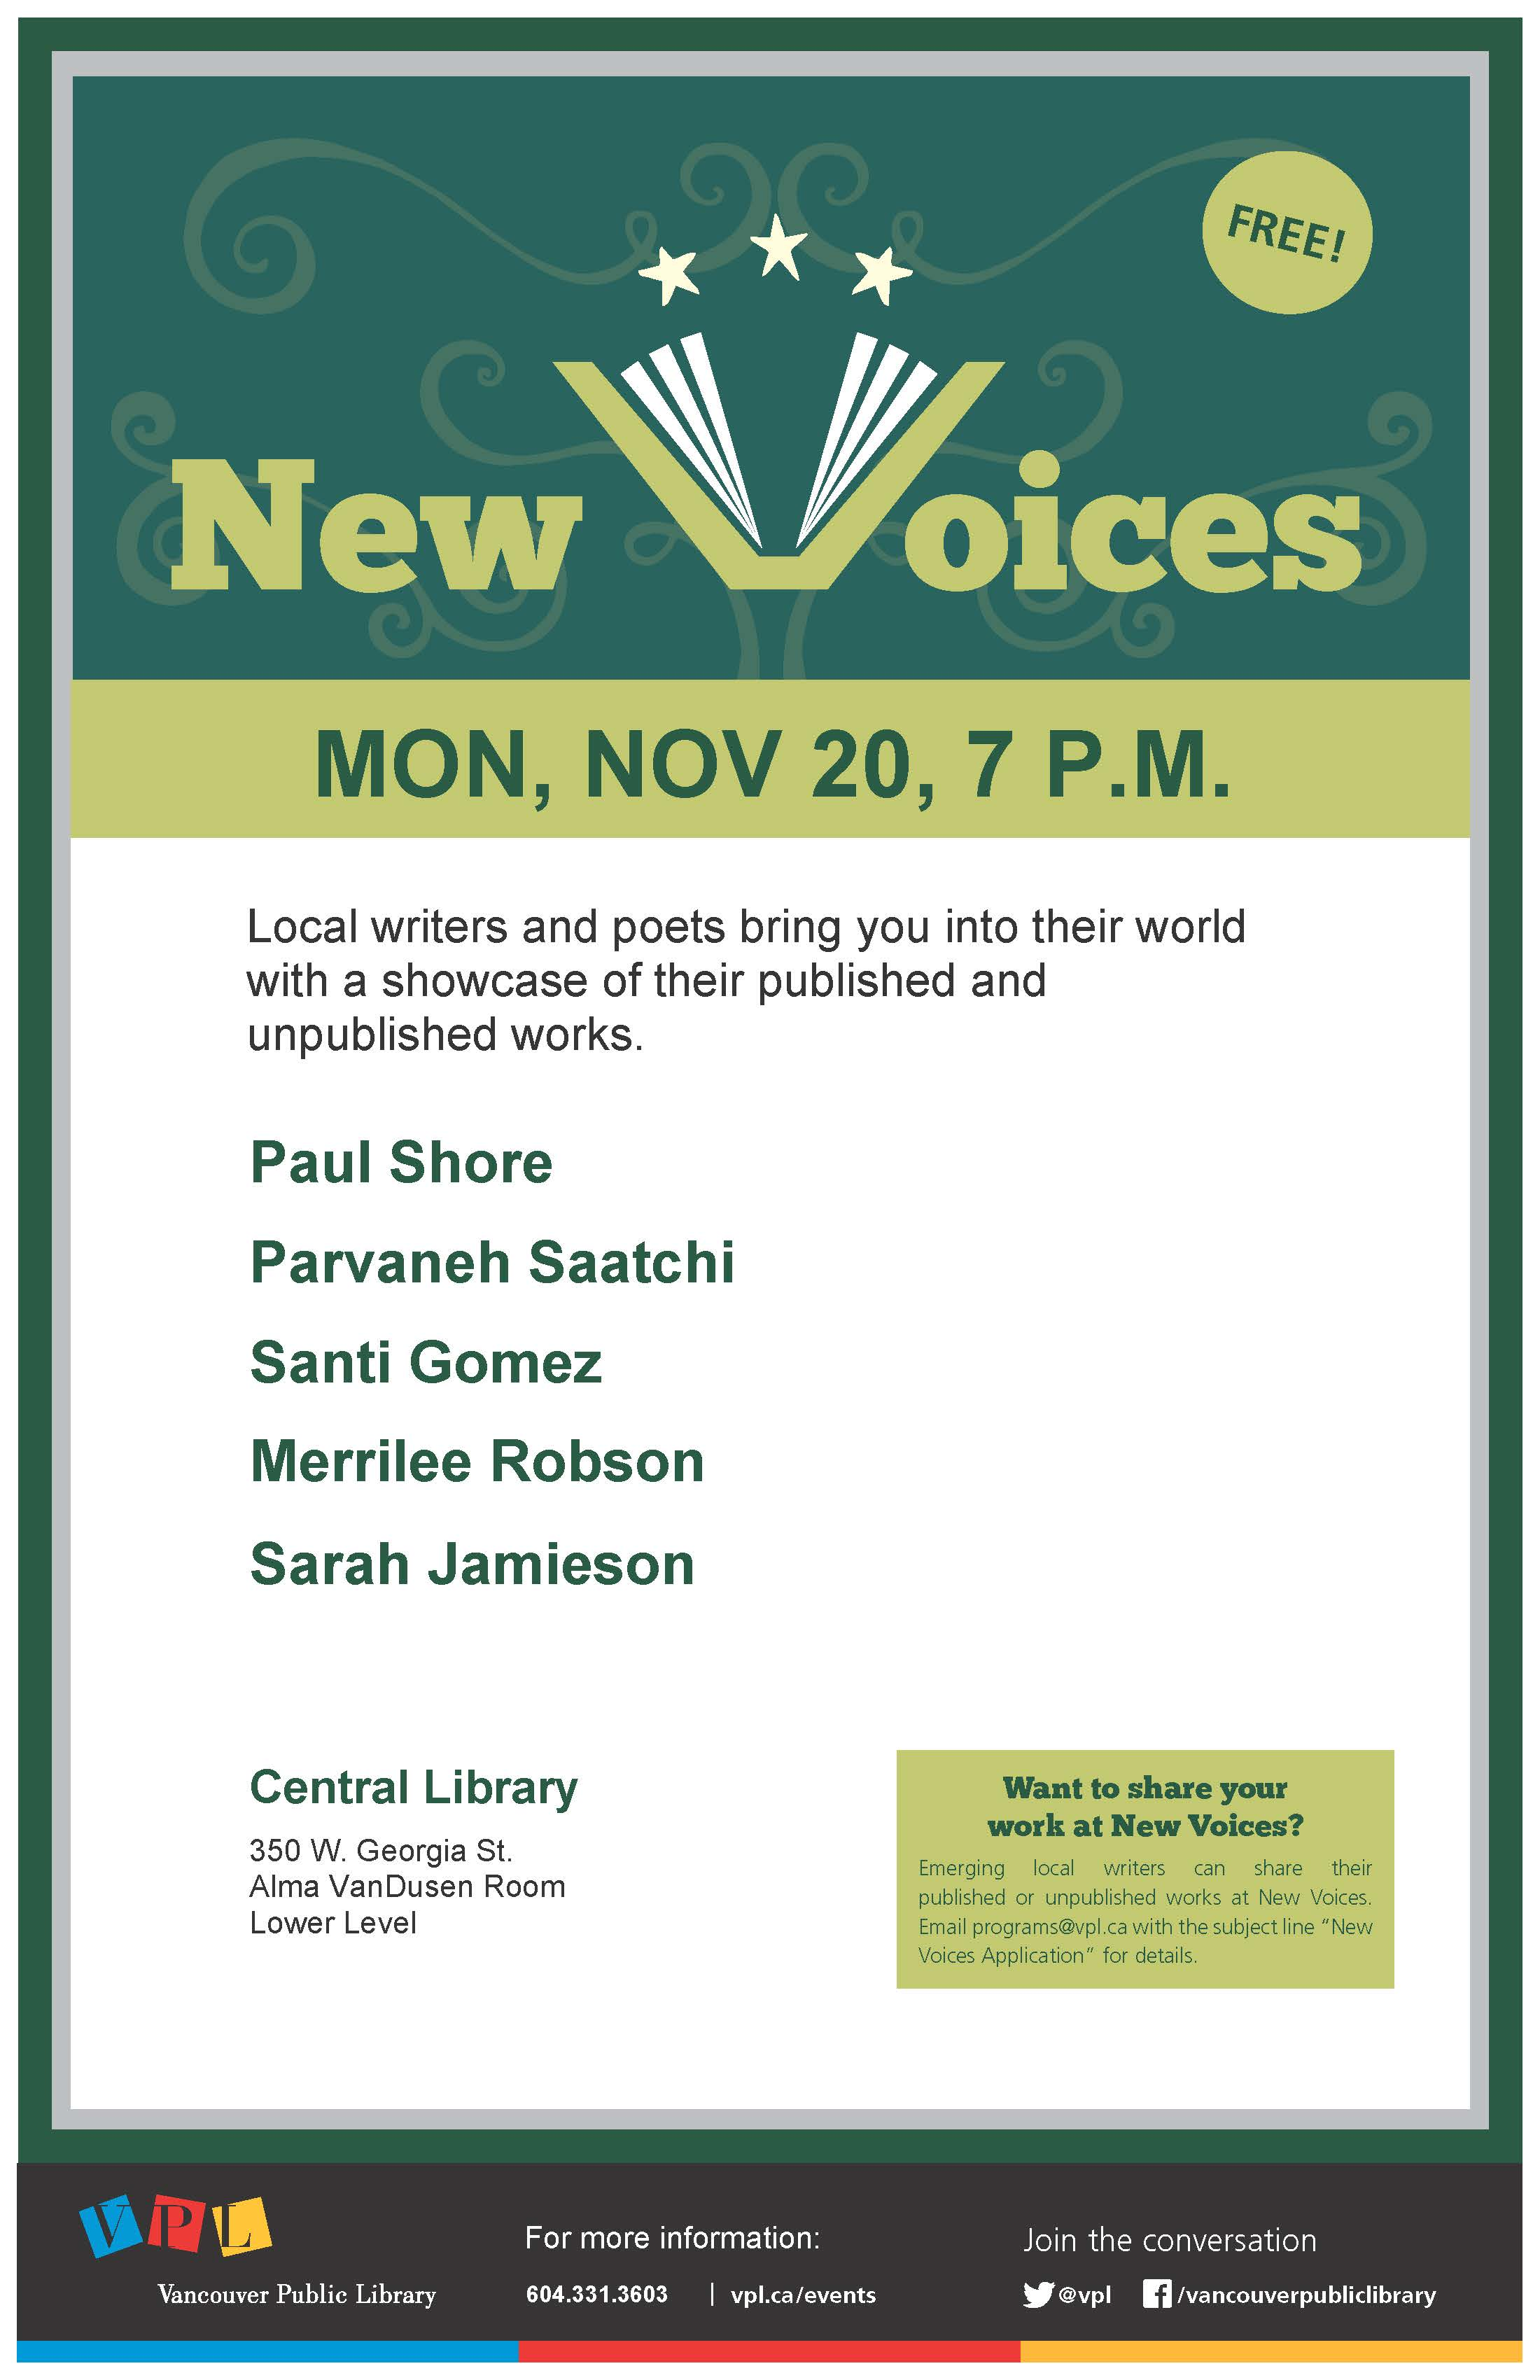 New Voices Reading Event at Vancouver Public Library